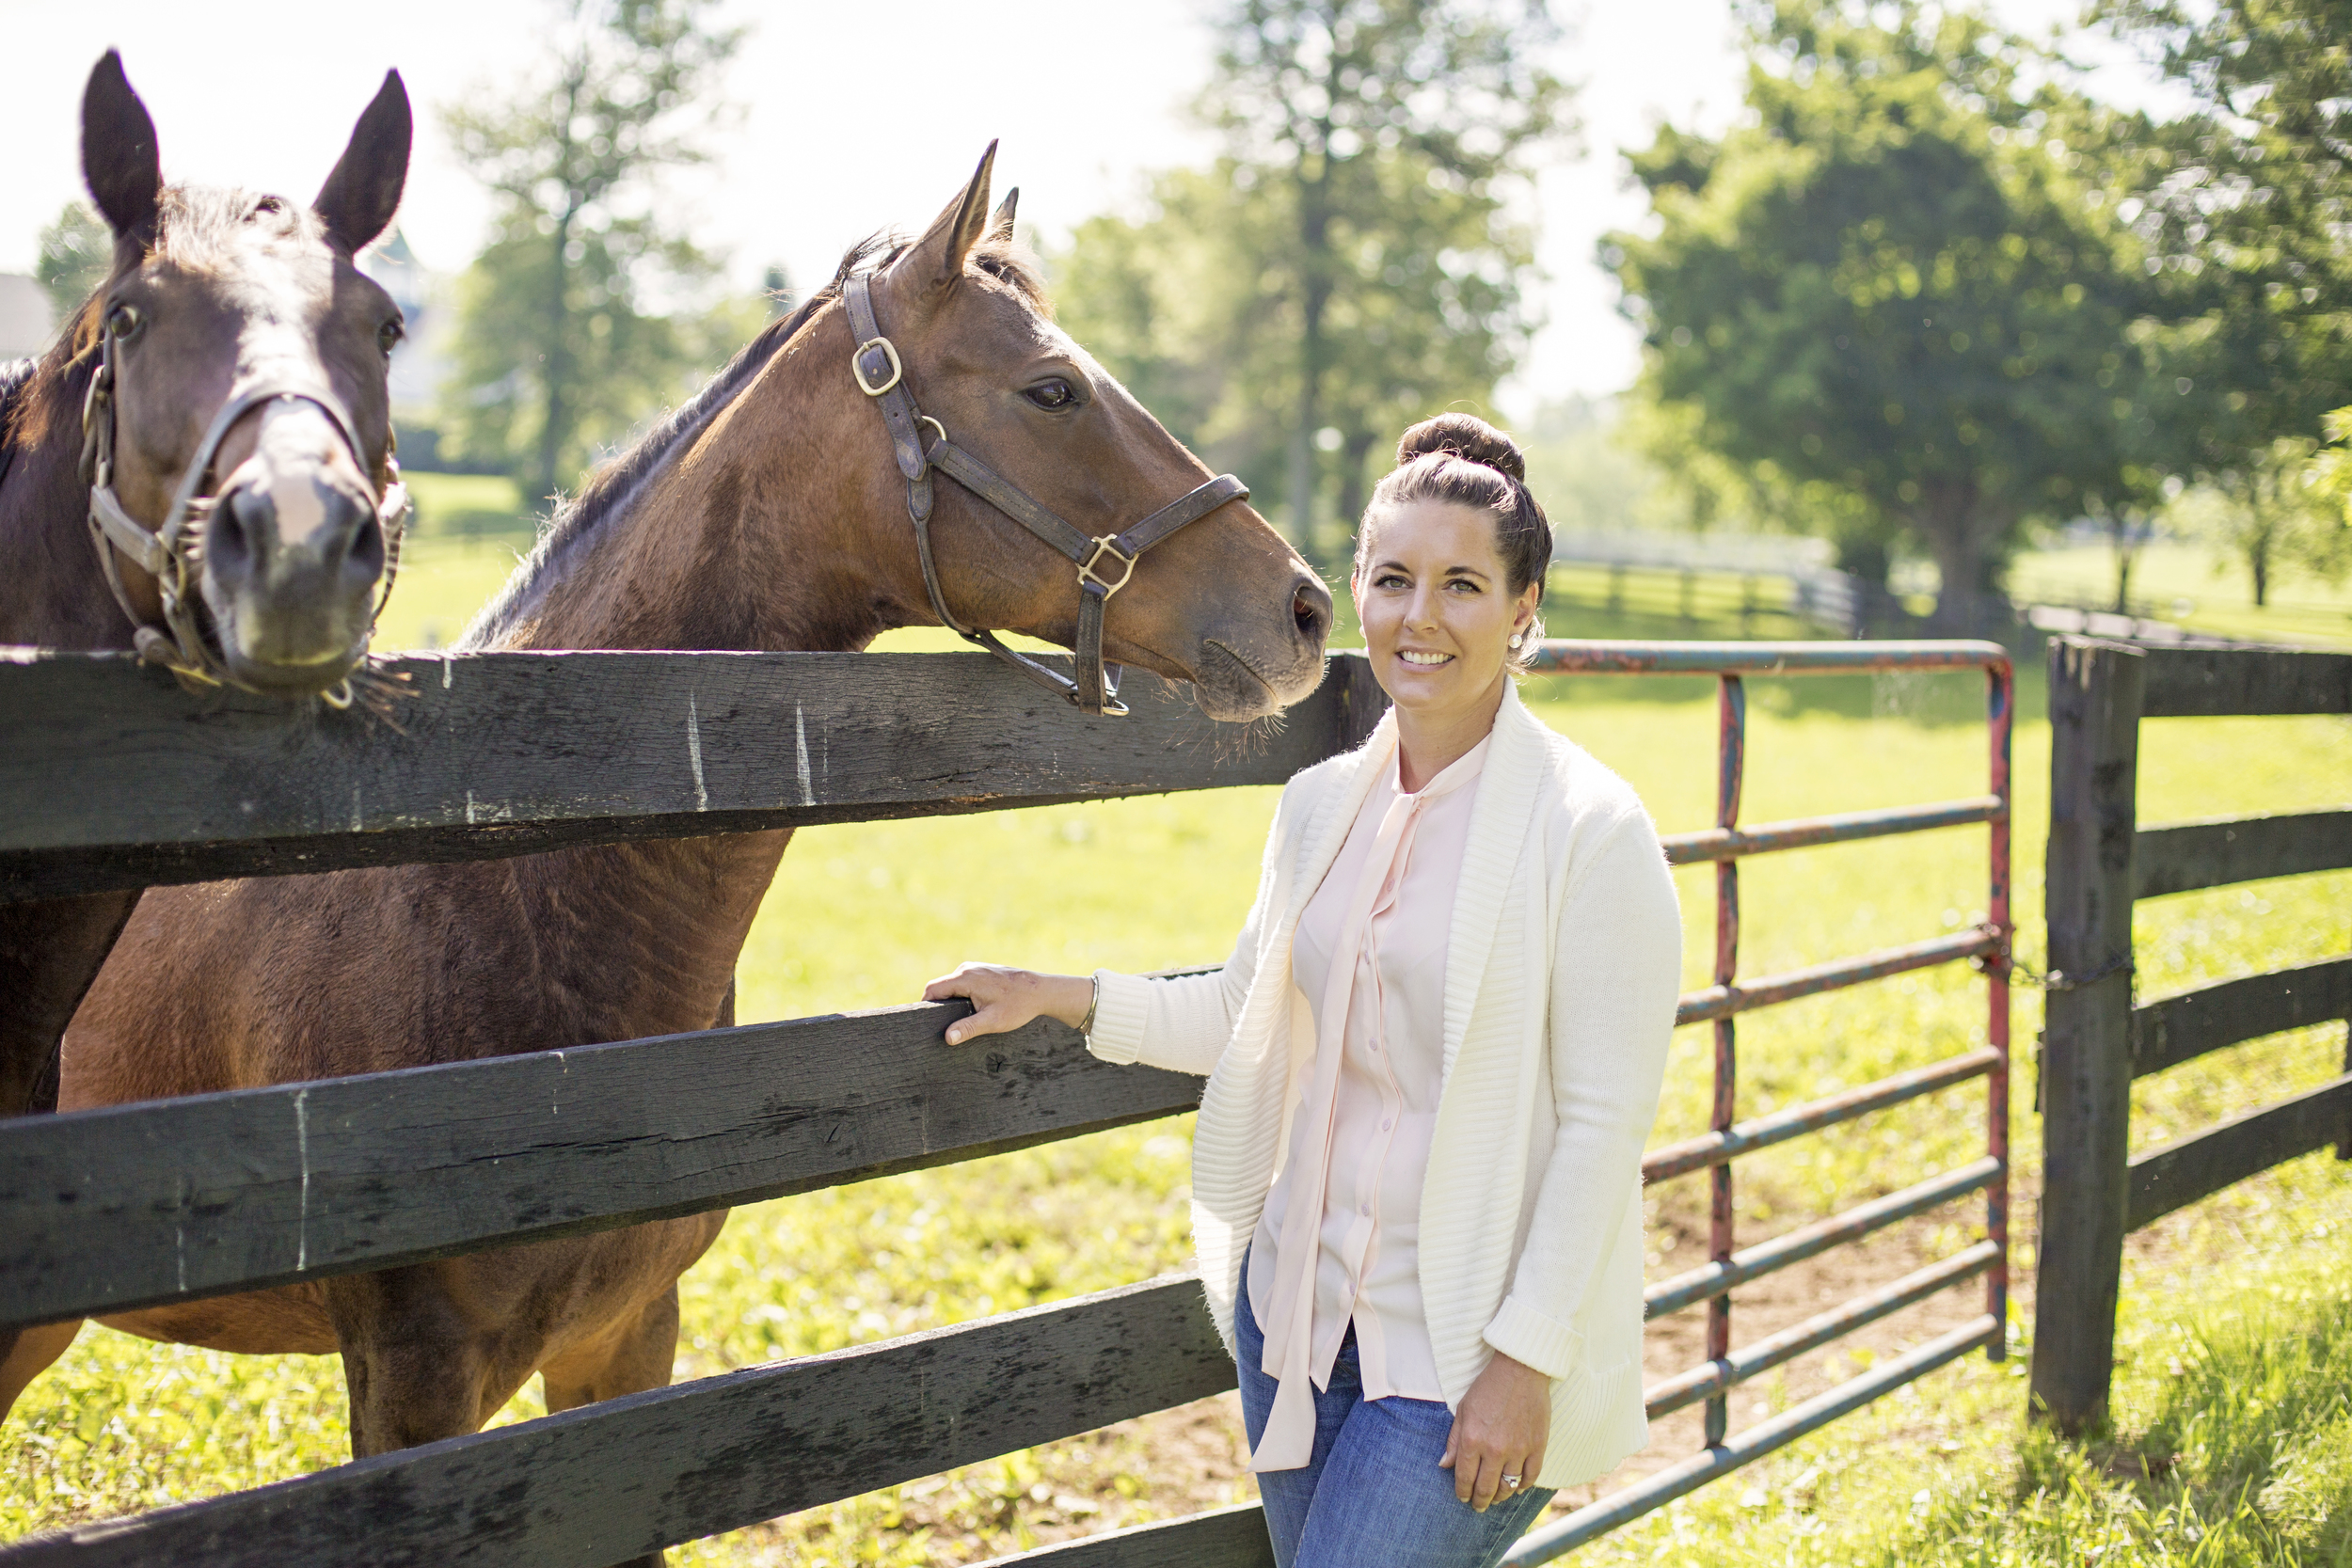 Kelli Cross  is a central Kentucky native who grew up with horses and has devoted her life to raising quality stock.  Her experience on commercial farms allows for her to meld big farm experience and talent to Sovereigns boutique size and atmosphere.  This gives clients a chance to build commercial portfolios while taking advantage of our personalized service and hands on approach.  Along with the massive amount of reproduction experience, Kelli also has a proven track record of producing profitable yearlings, and outstanding racehorses.  She feels the cornerstone in a quality yearling program is great horsemanship.  Nutrition and quality blacksmith work are also paramount at Sovereign Farm.  Kelli holds a Bachelors of Science in Equine Production from the University of Kentucky, and is a very active volunteer in Lexington, Kentucky as well as in the Equine community.